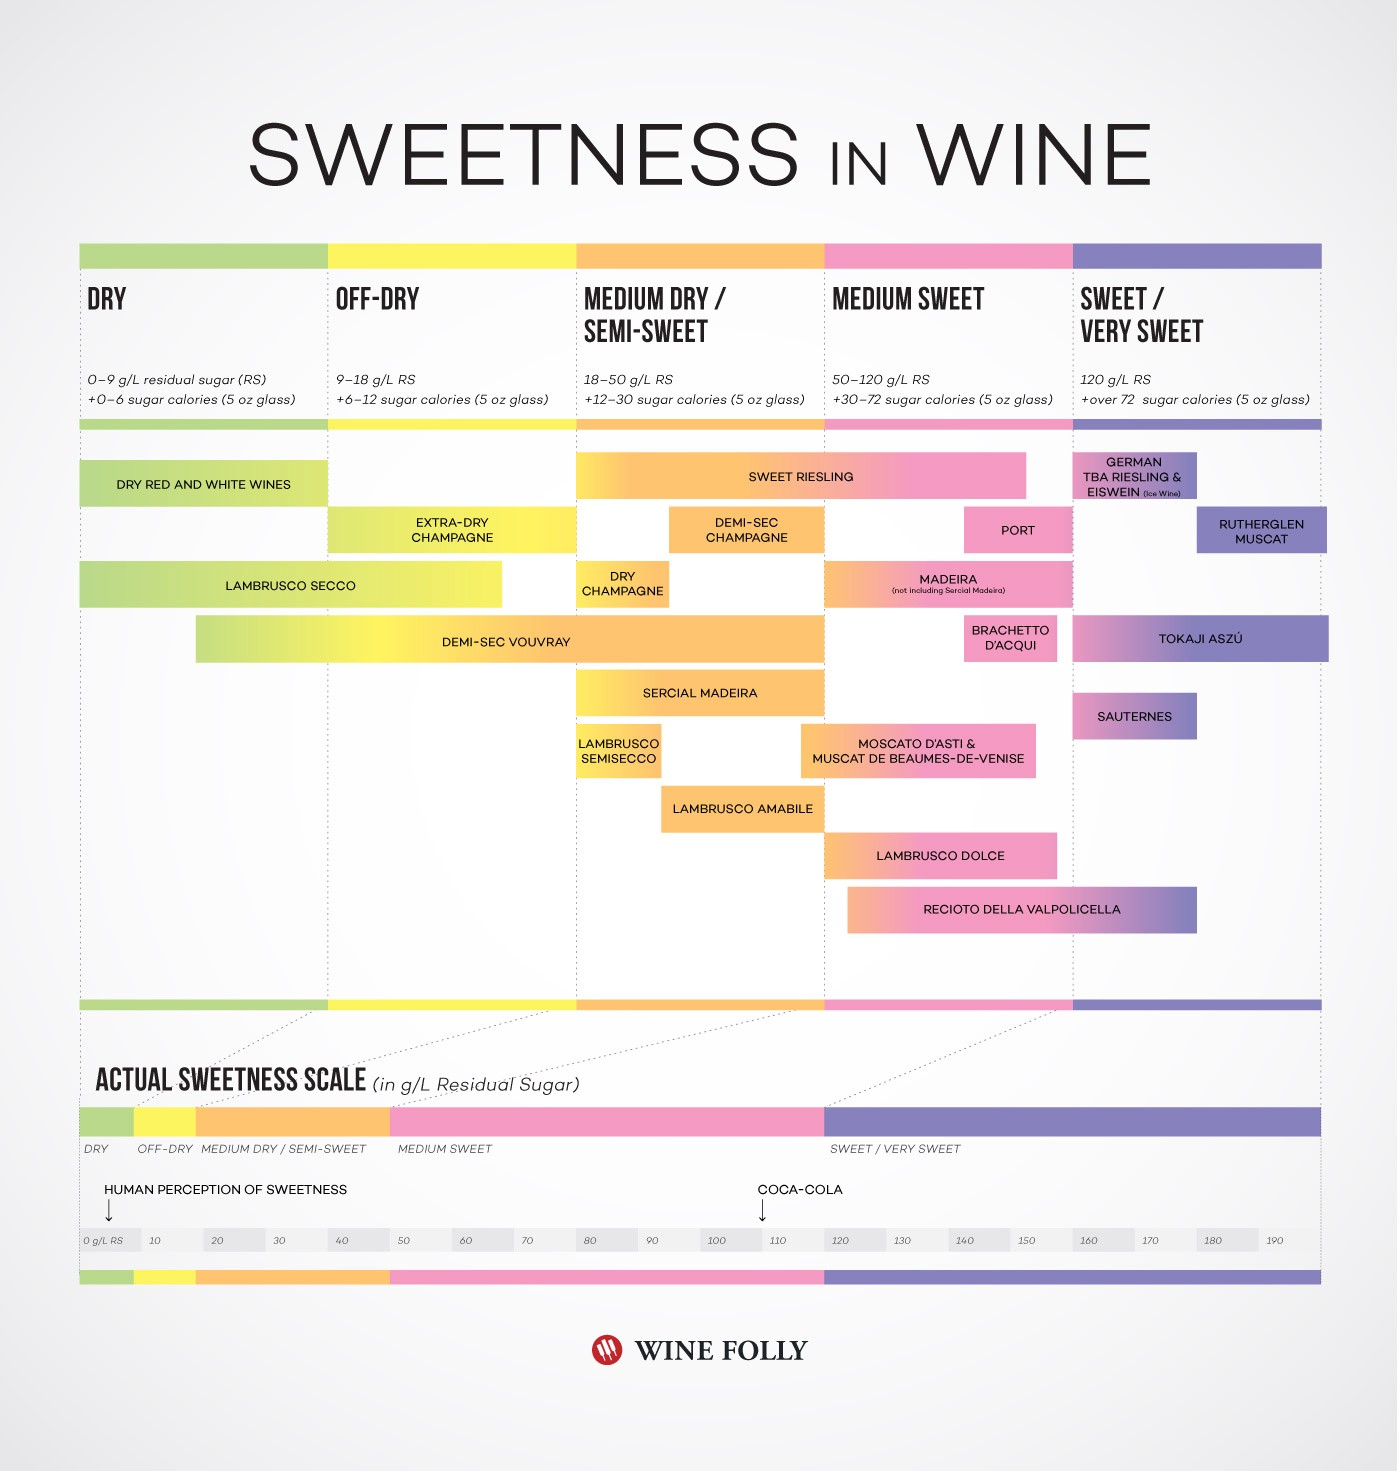 A graphic showing wine still wine sweetness levels.